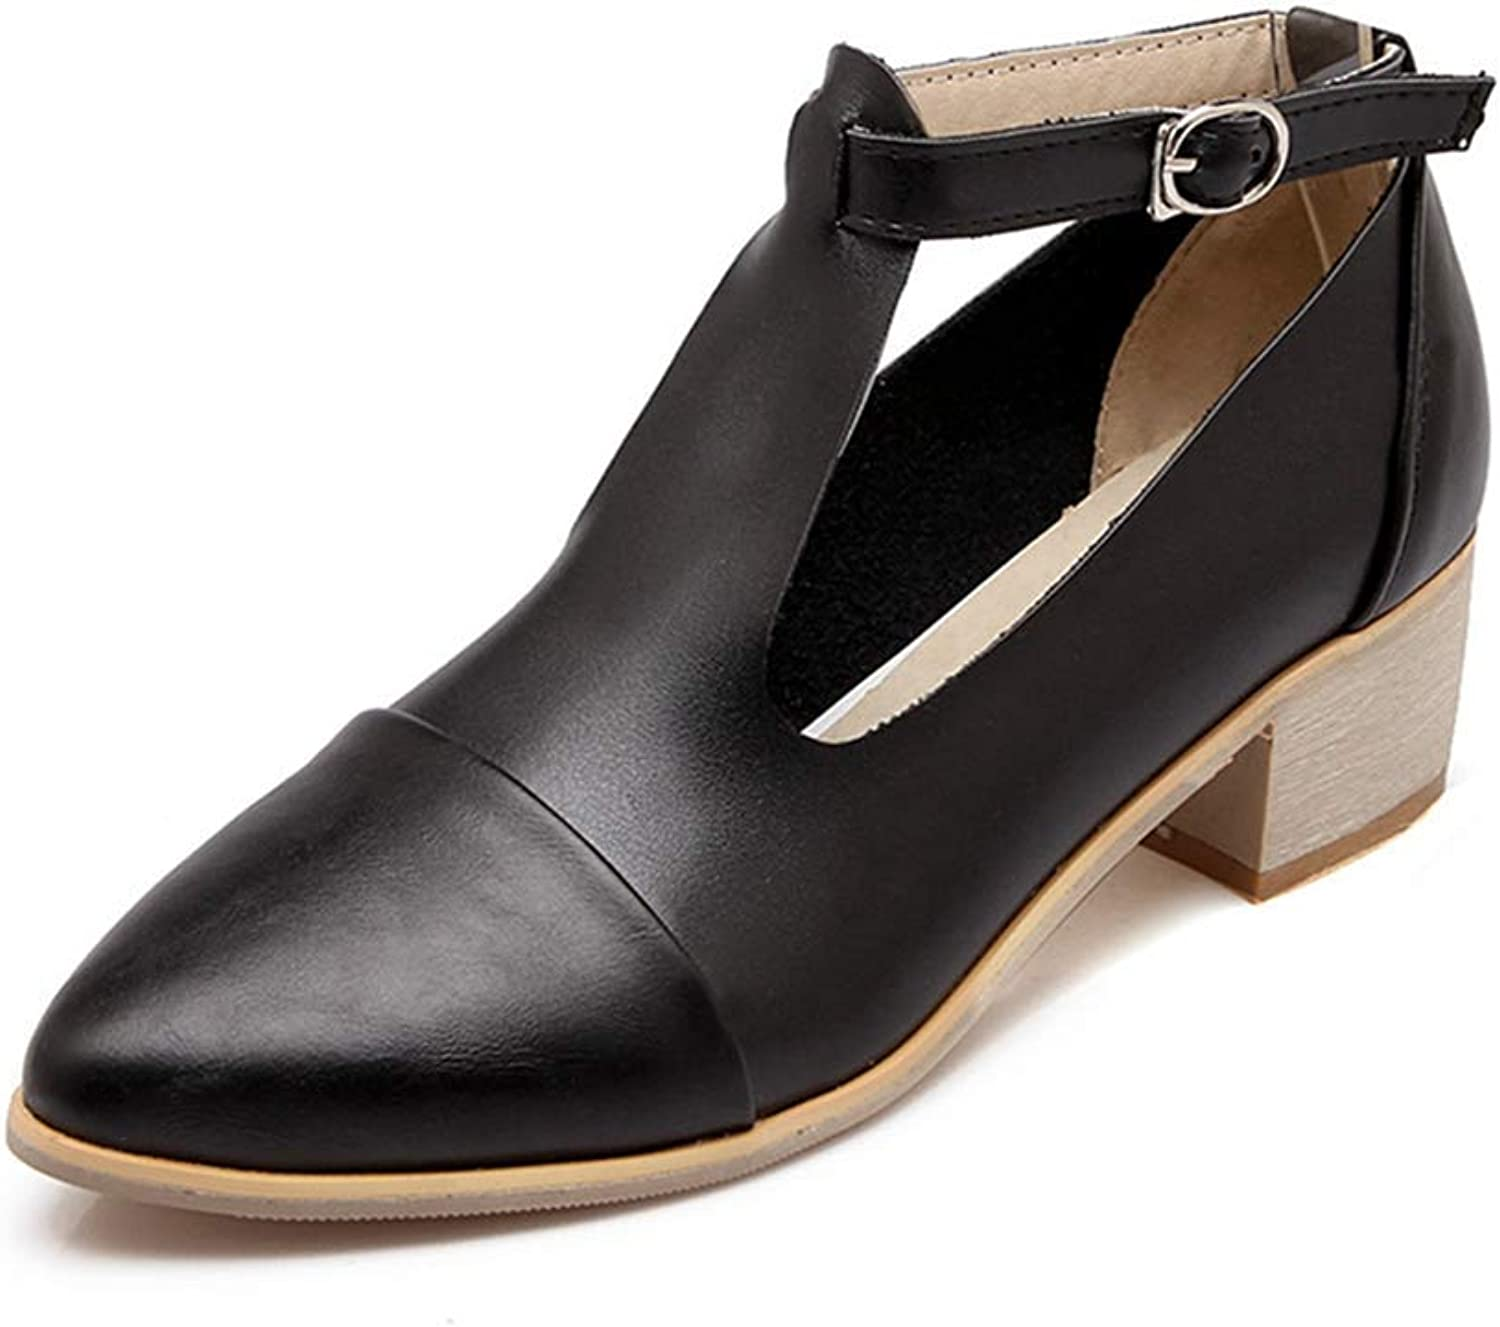 BMTH Women's Pointed Toe T-Strap Oxford Pumps Mary Jane Platform Buckle Strap Chunky Mid Heel Dress shoes